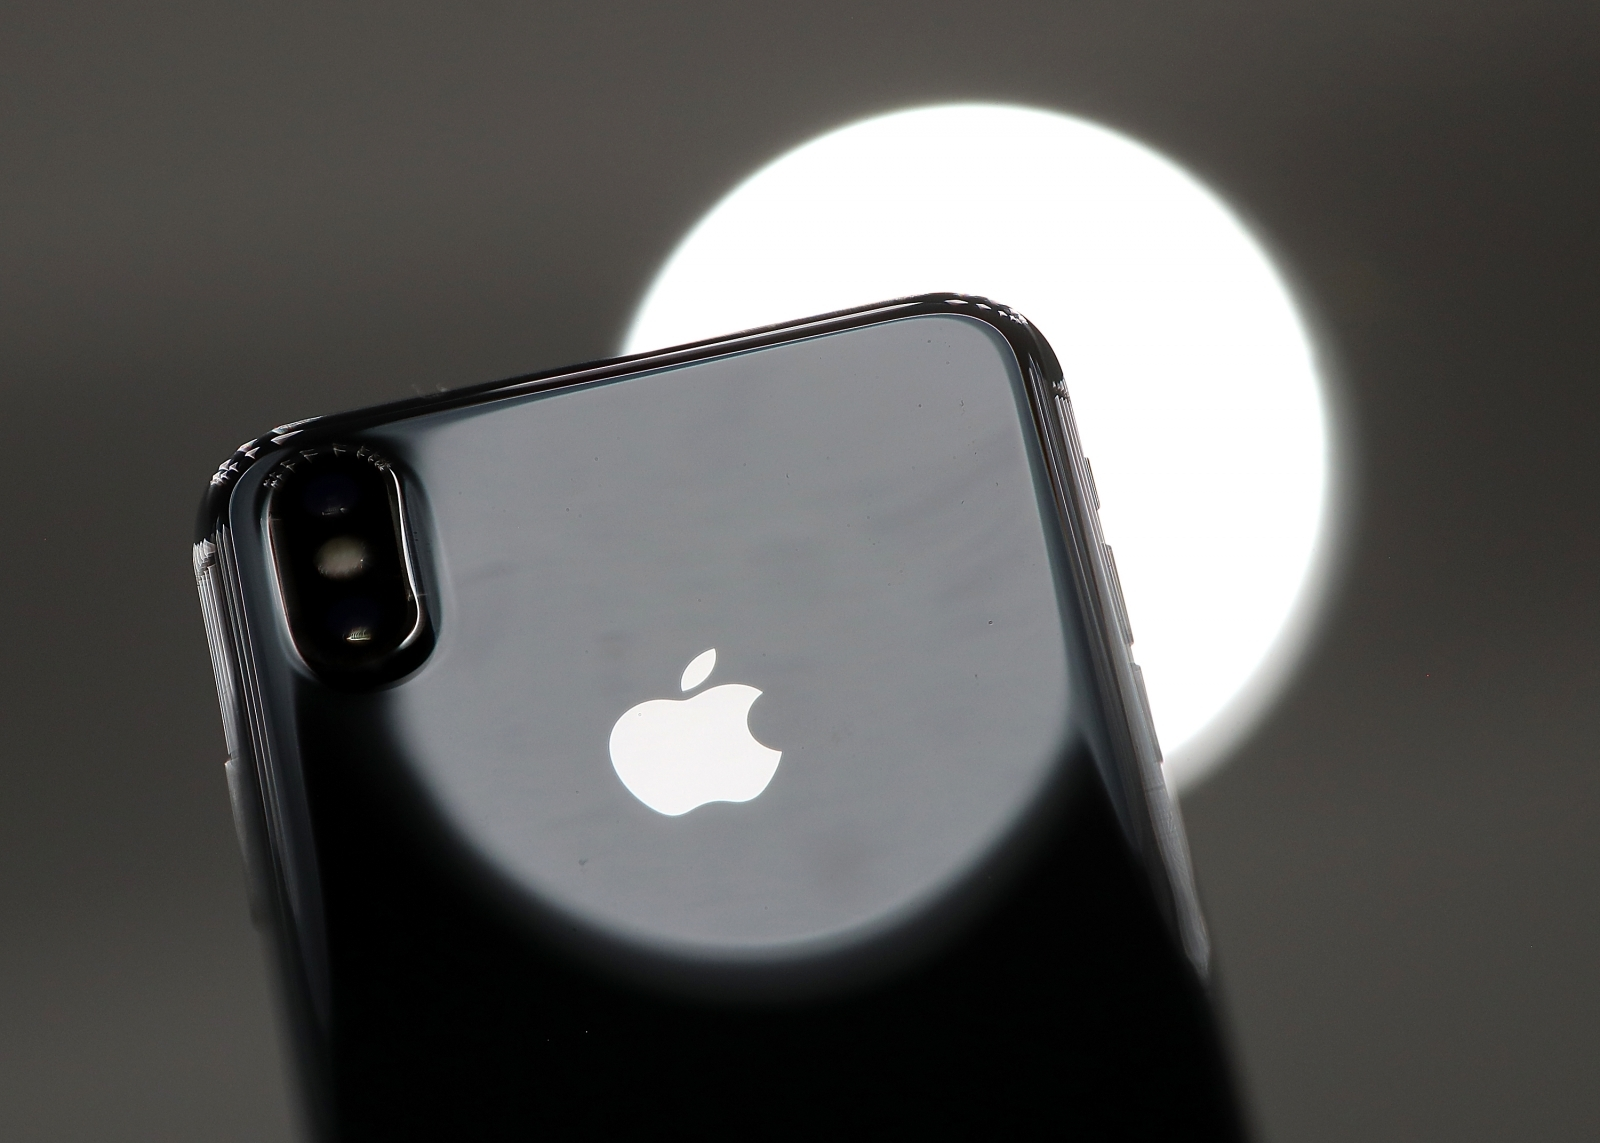 IOS 11 security flaw found by Google security researcher